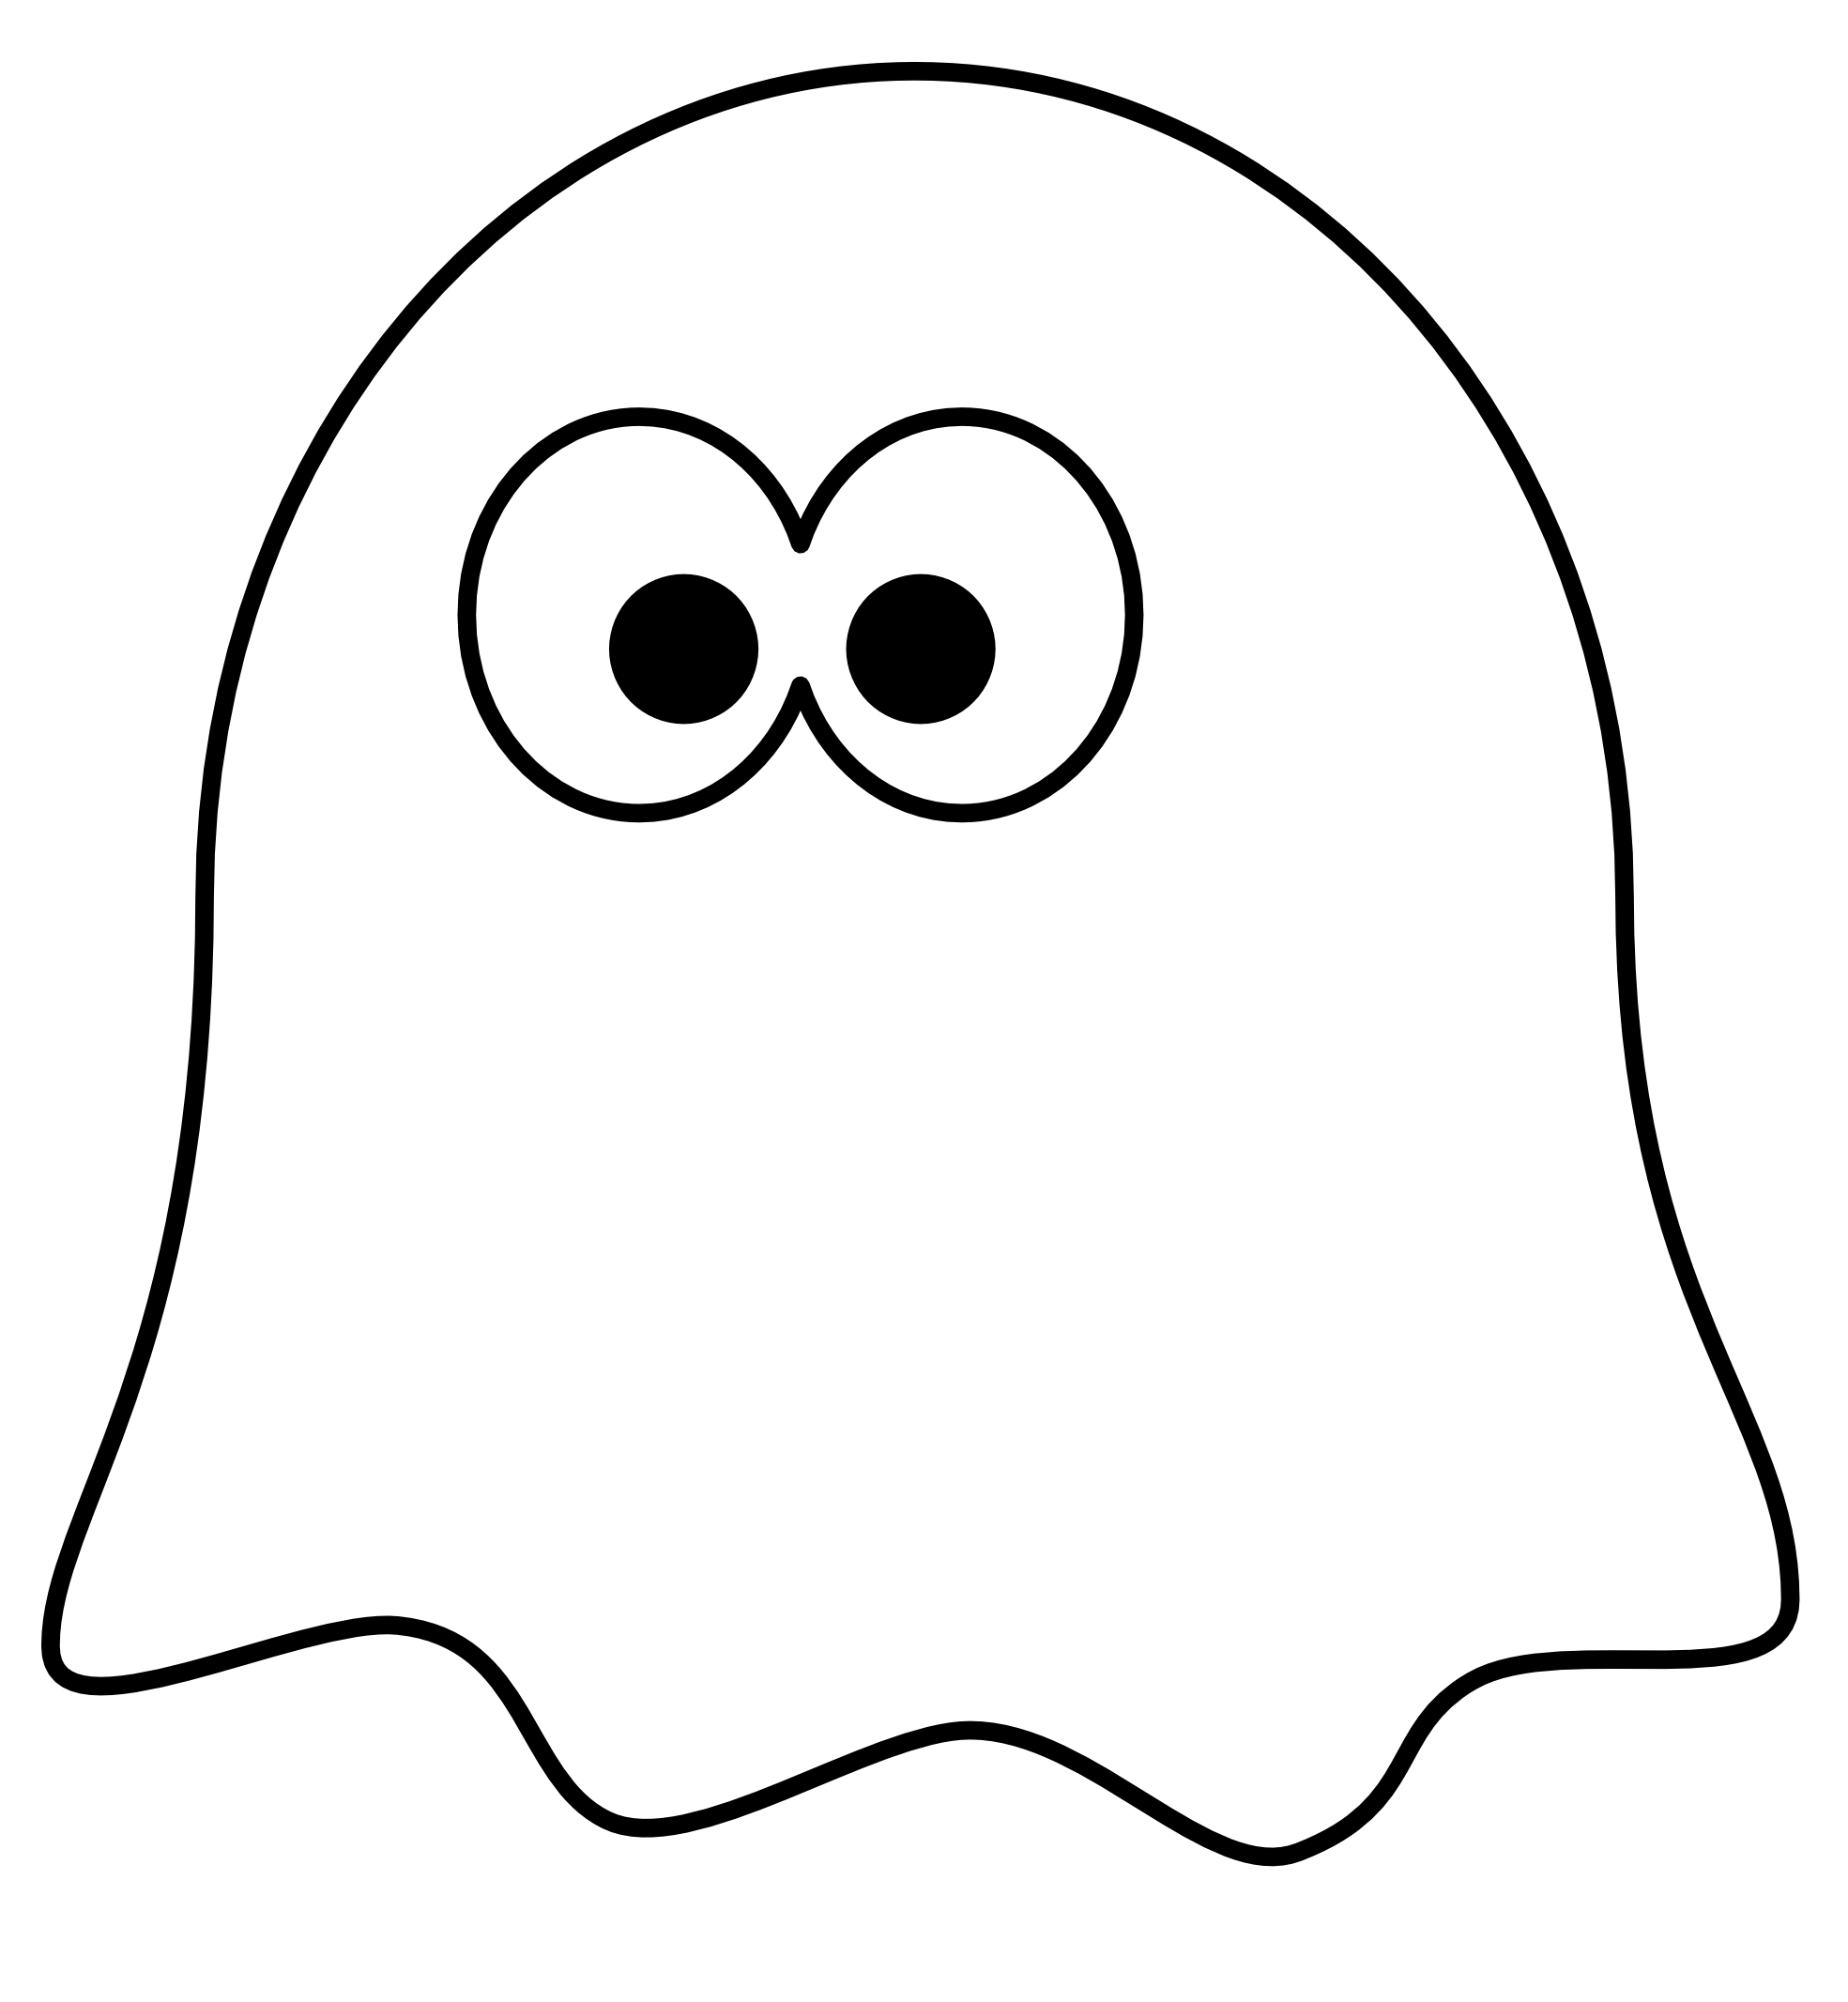 Ghostly clipart cartoon Ghost%20clipart%20black%20and%20white Panda Clipart Ghost Clipart